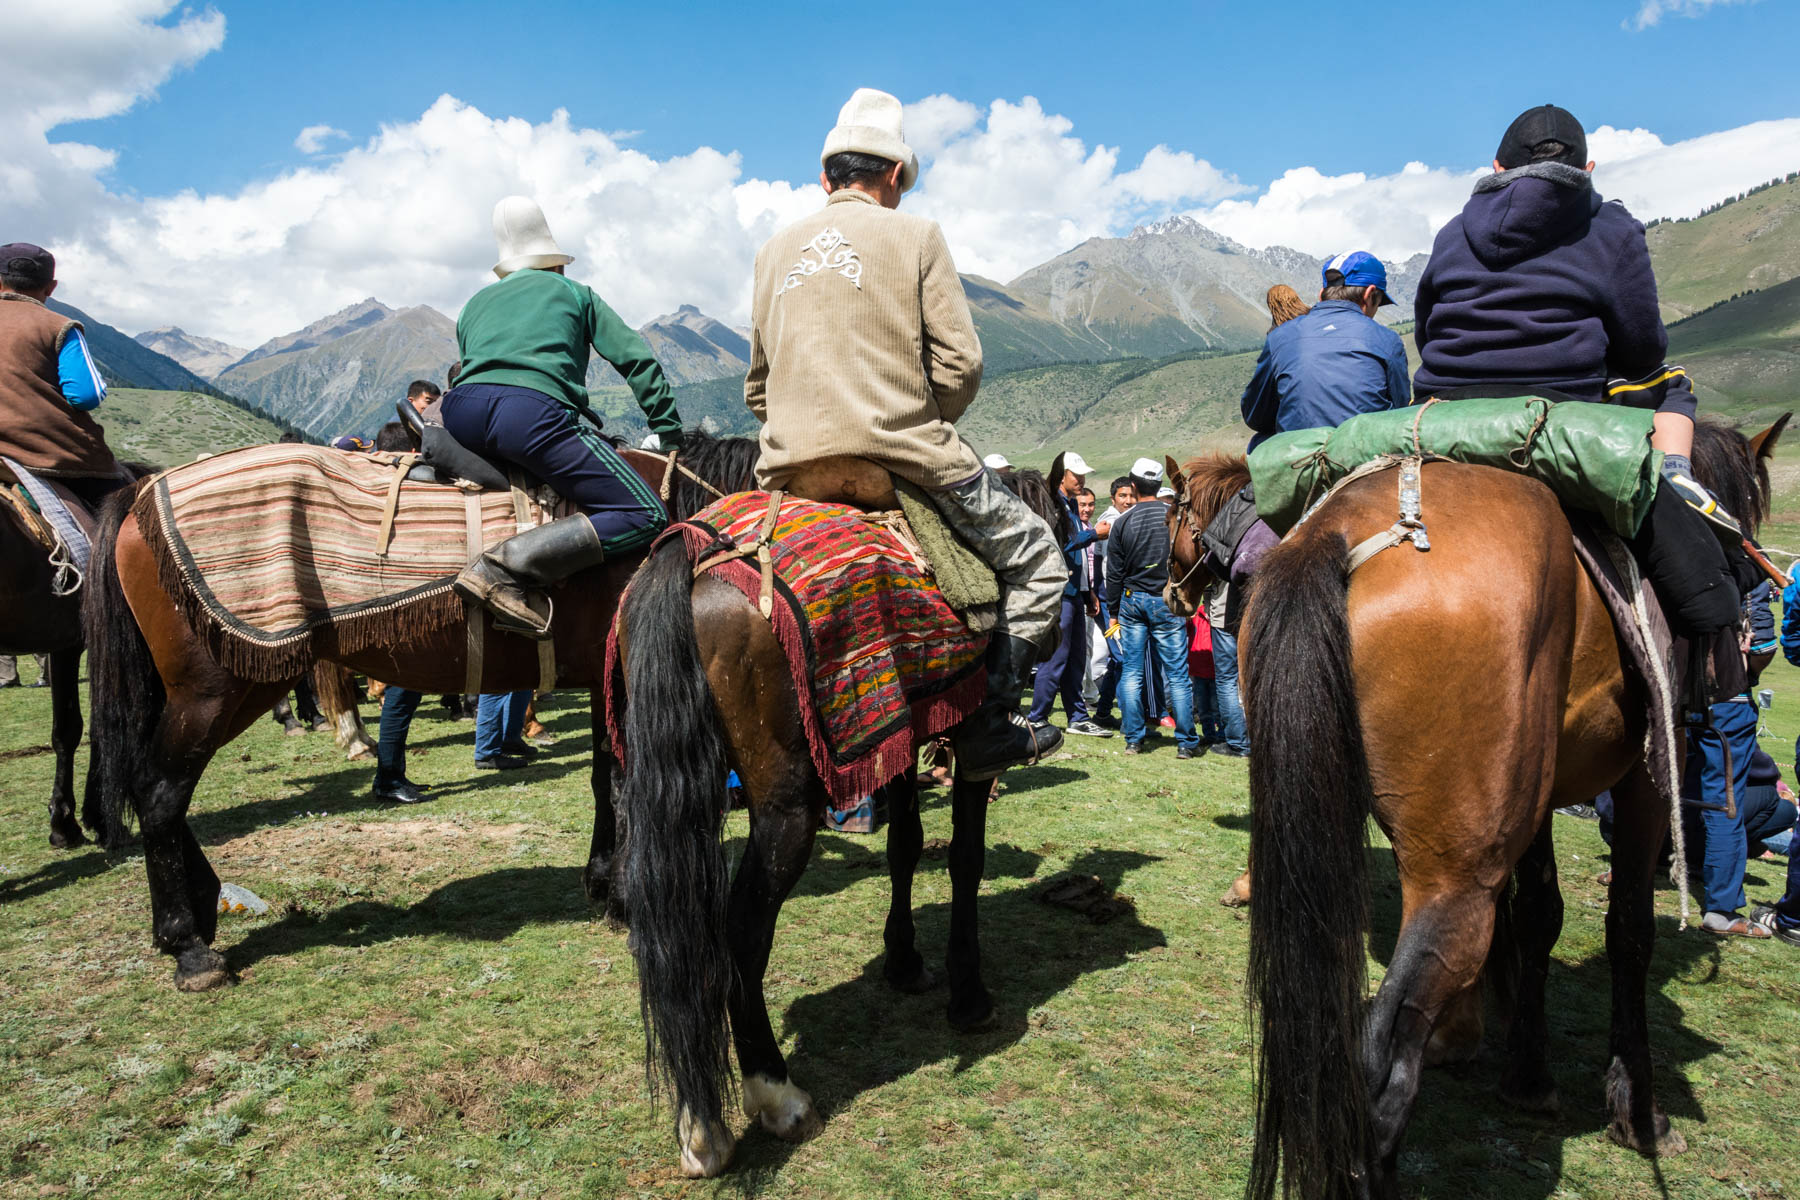 Spectators on horseback - Are the 2018 World Nomad Games worth the trip? - Lost With Purpose